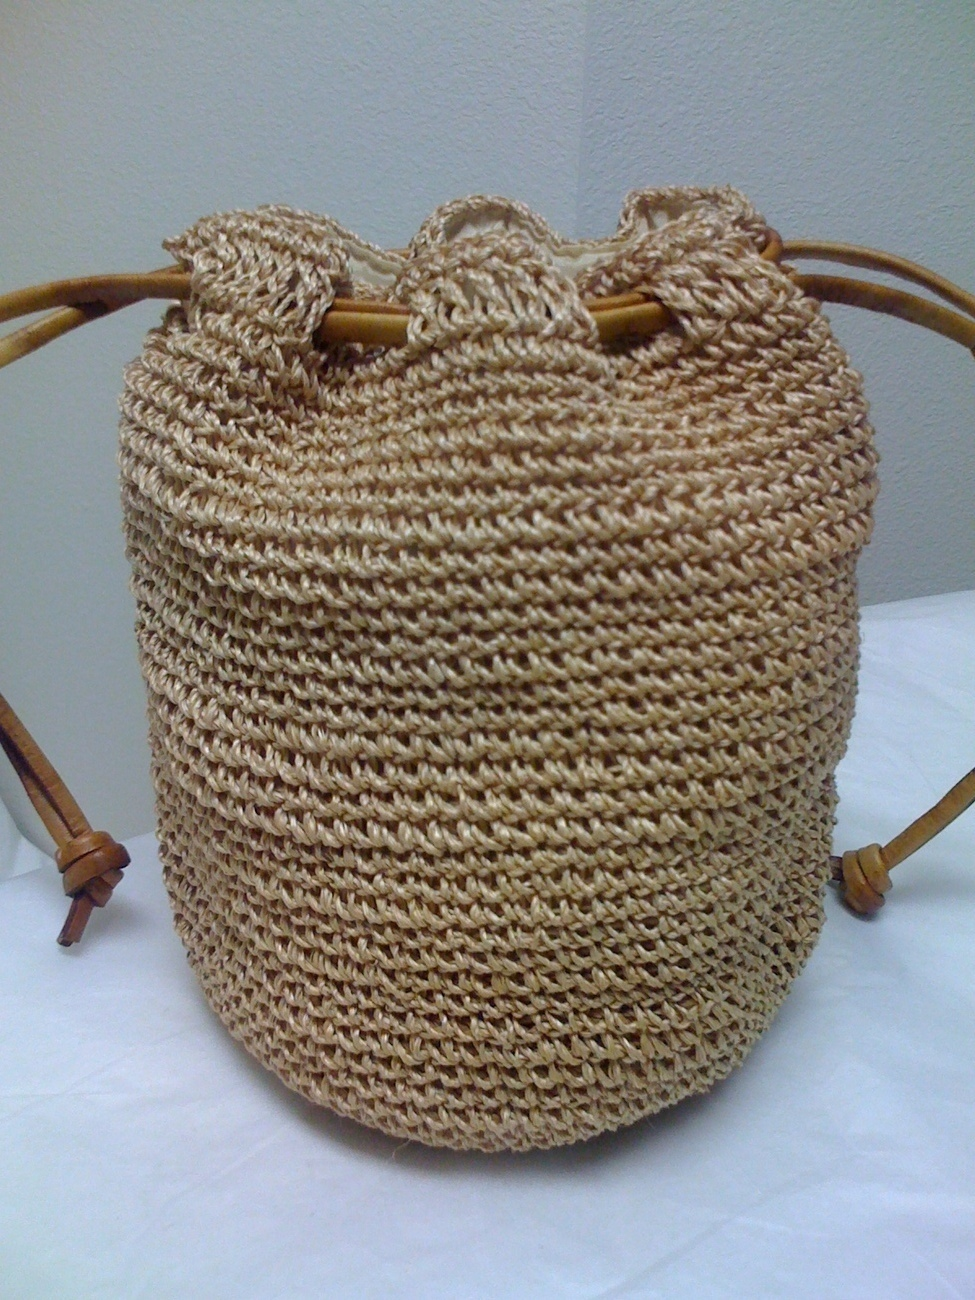 Crochet Drawstring Bag : RAFFIA STRAW CROCHET DRAWSTRING BAG - Handbags & Purses